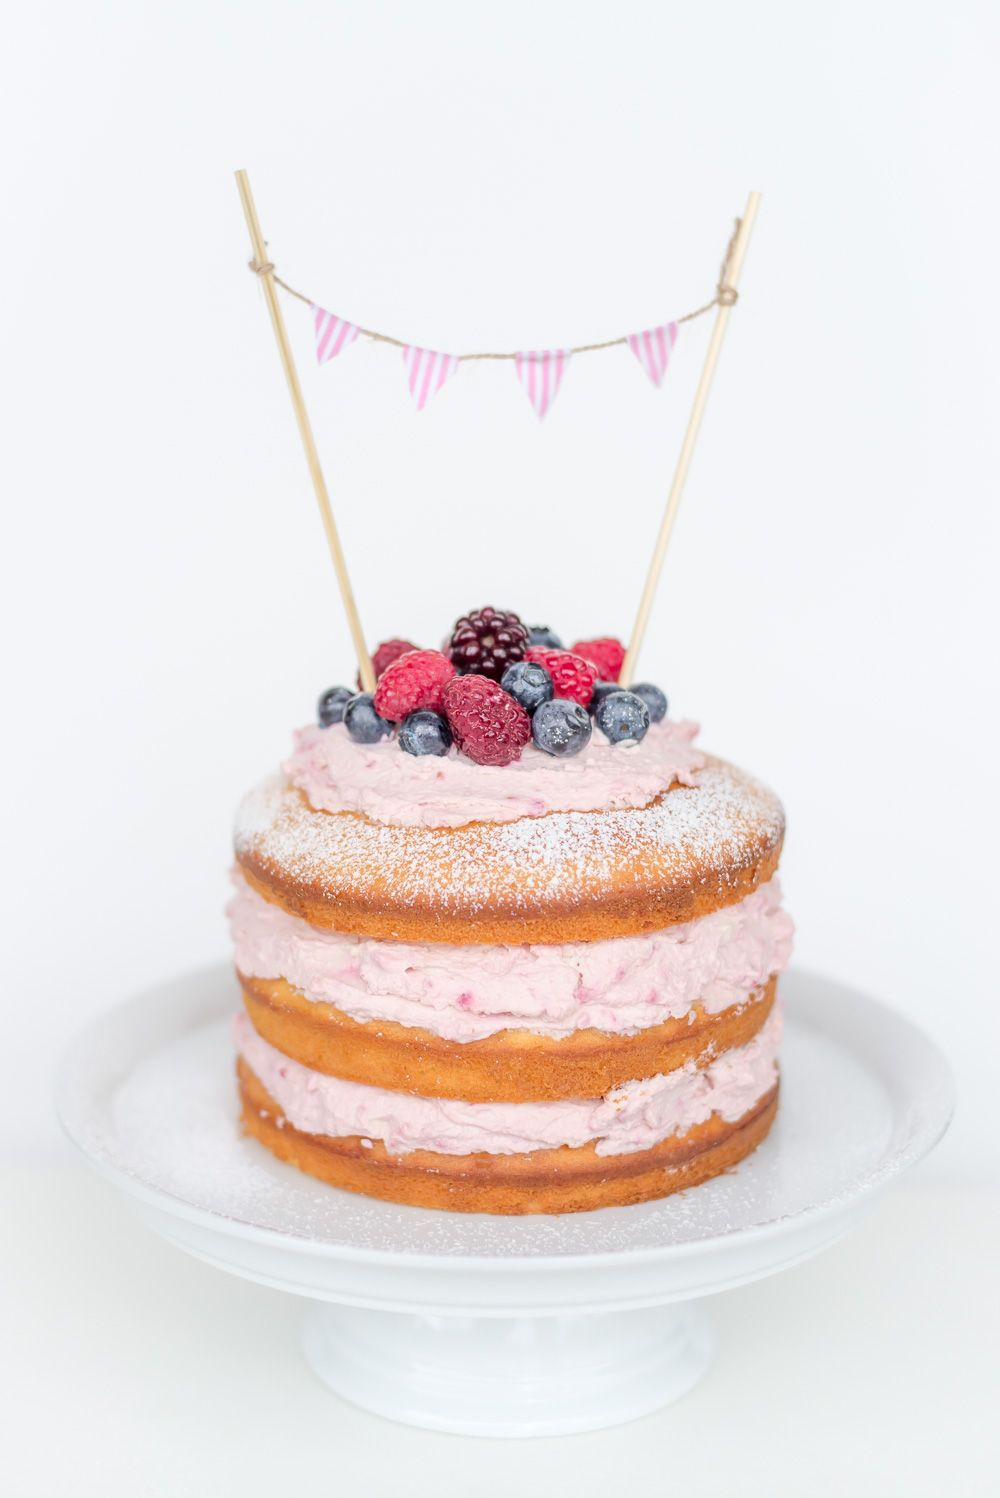 naked cake rezept mit himbeer mascarpone f llung. Black Bedroom Furniture Sets. Home Design Ideas